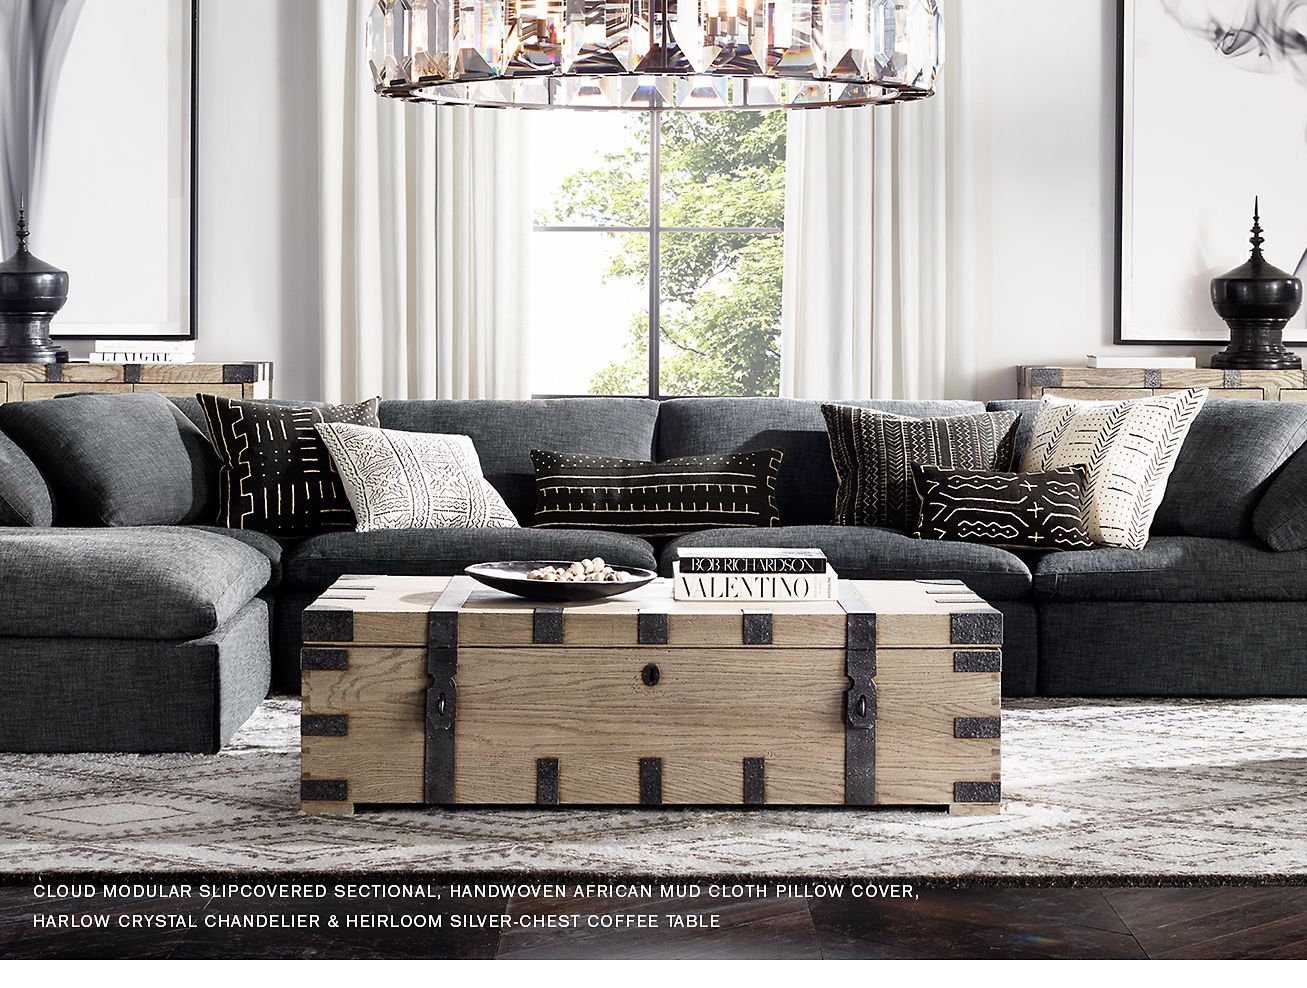 Restoration Hardware: Explore the Heirloom Collection and African Mud Cloth Pillows & Throws ...